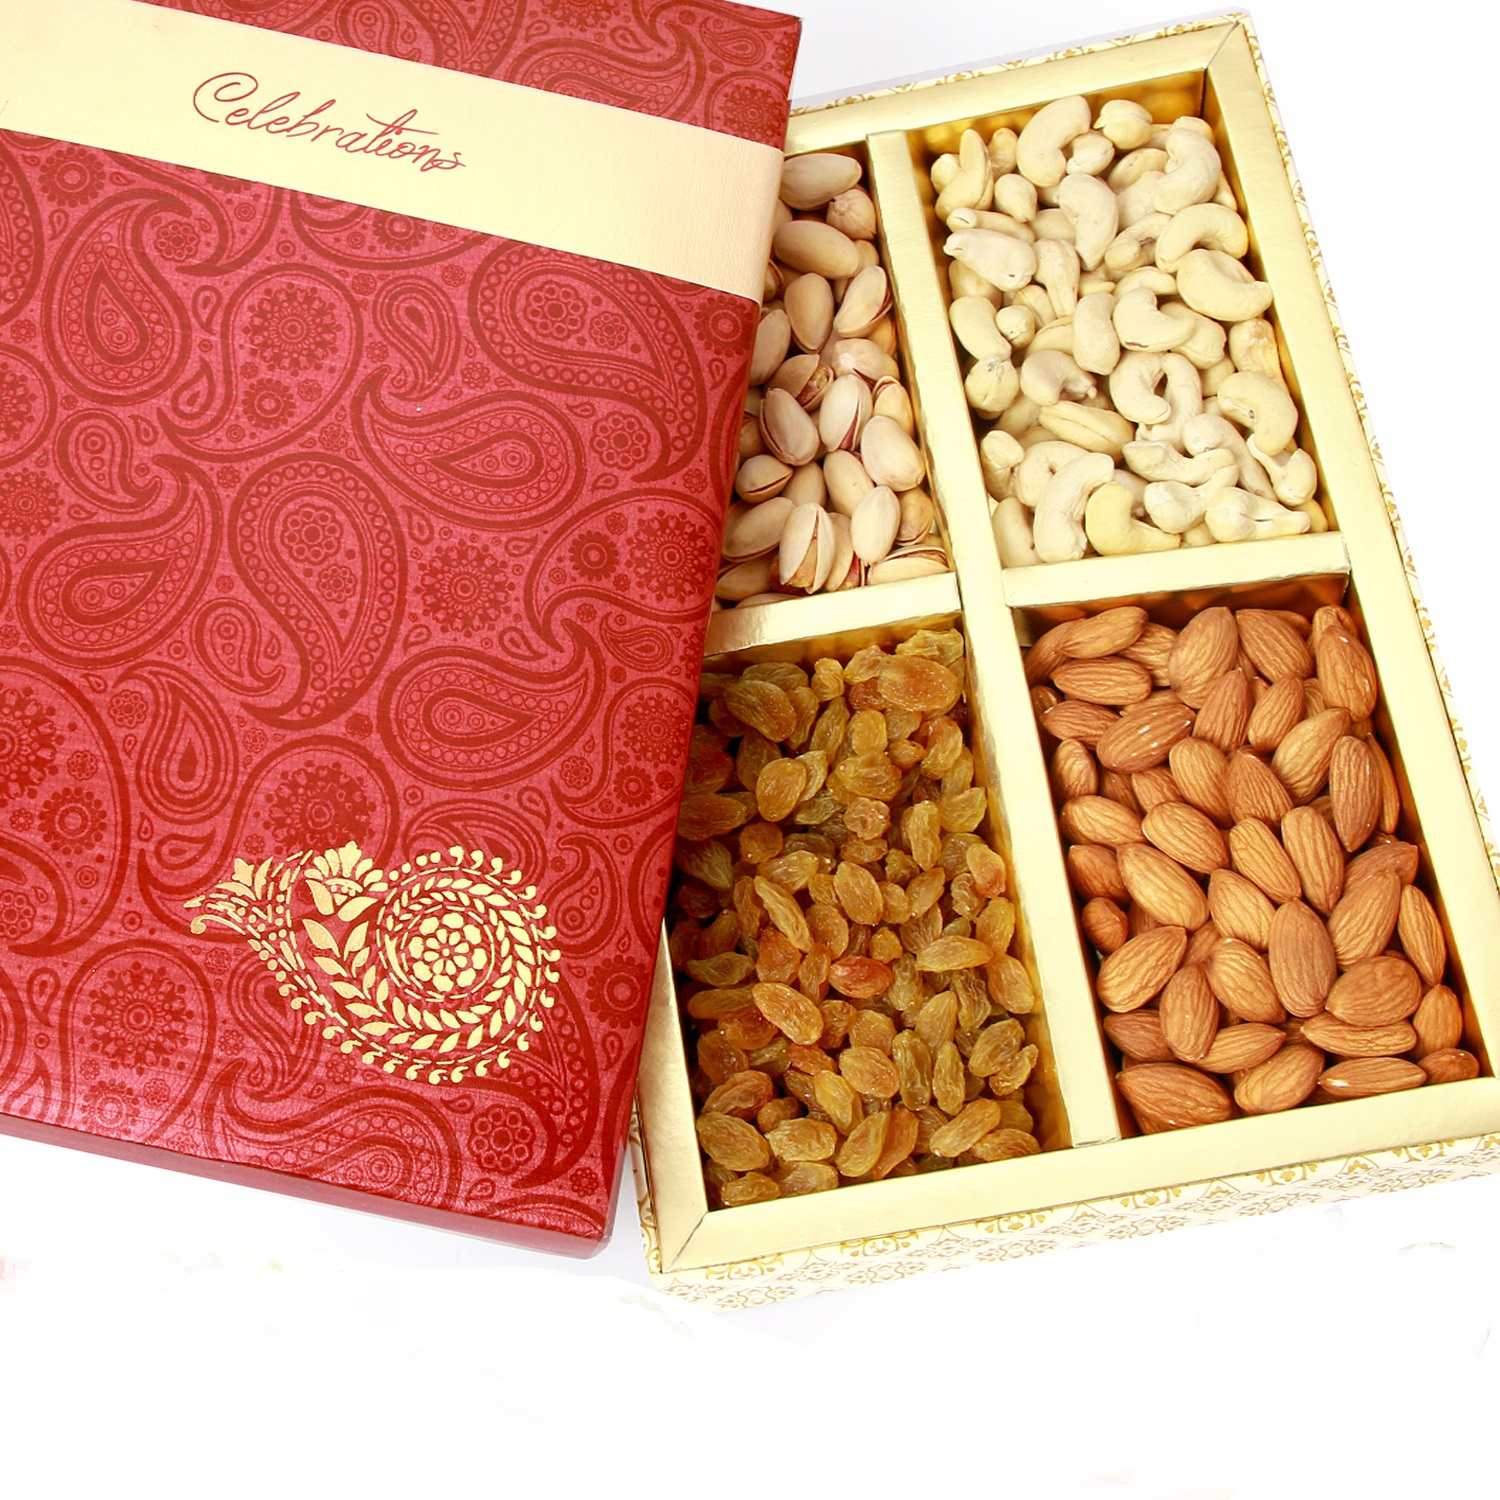 Celebration Dryfruits Box